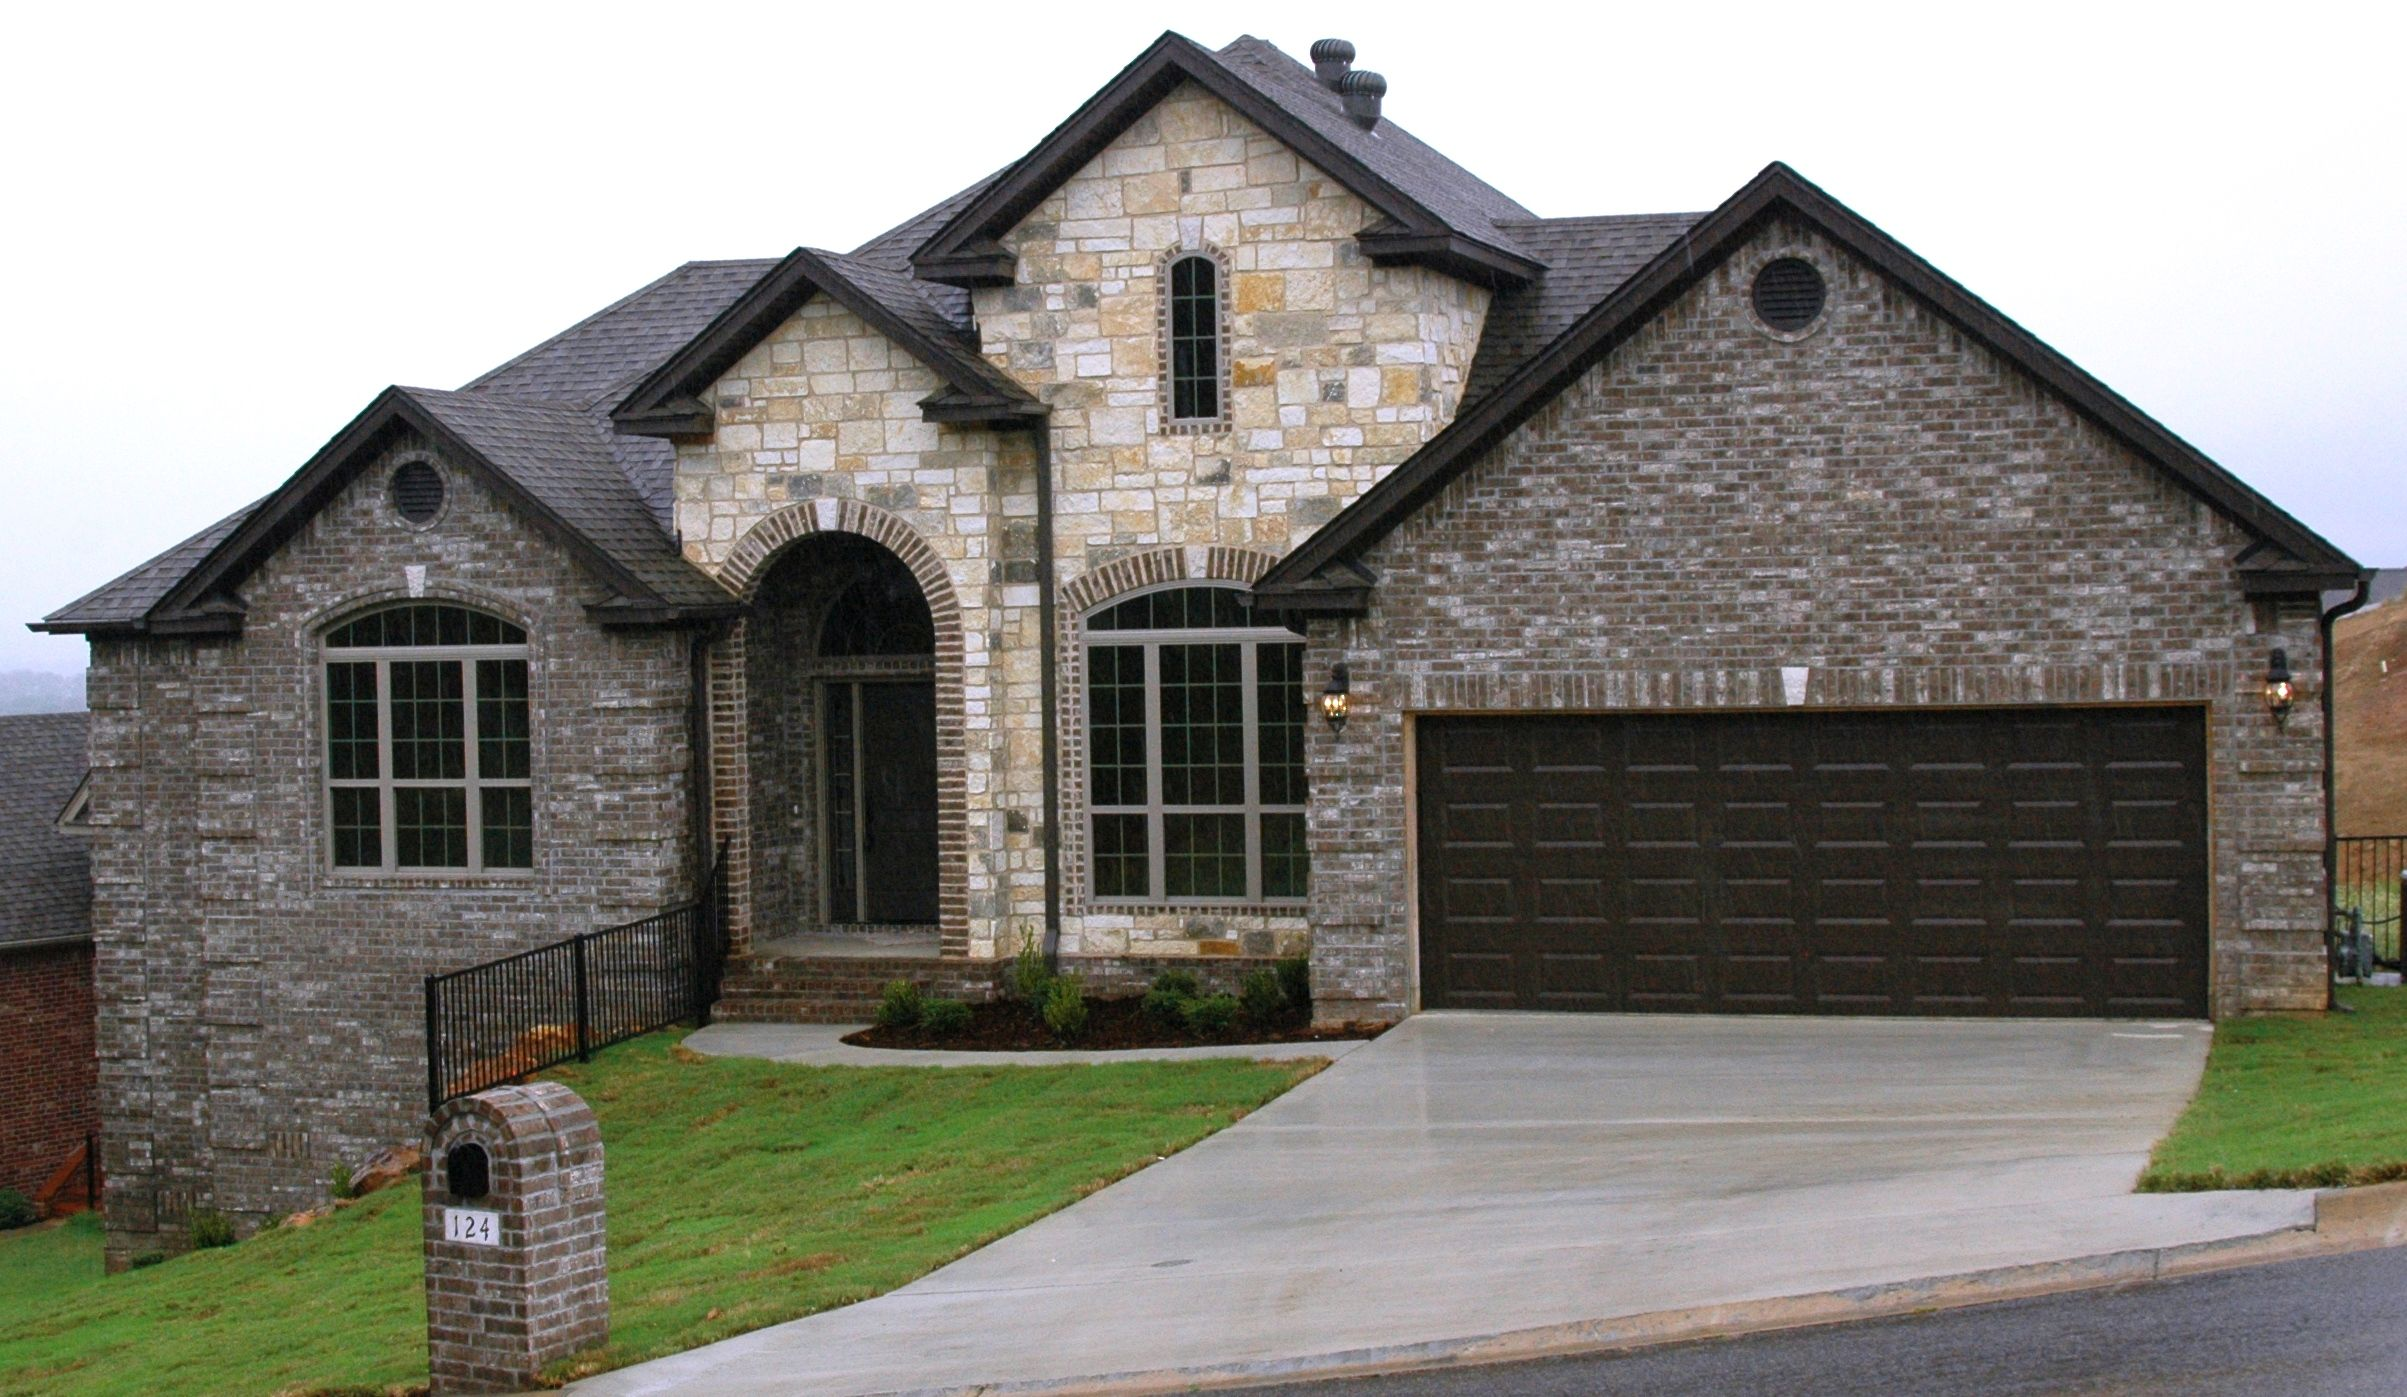 Little rock houses for sale and little rock real estate for Houses for sale